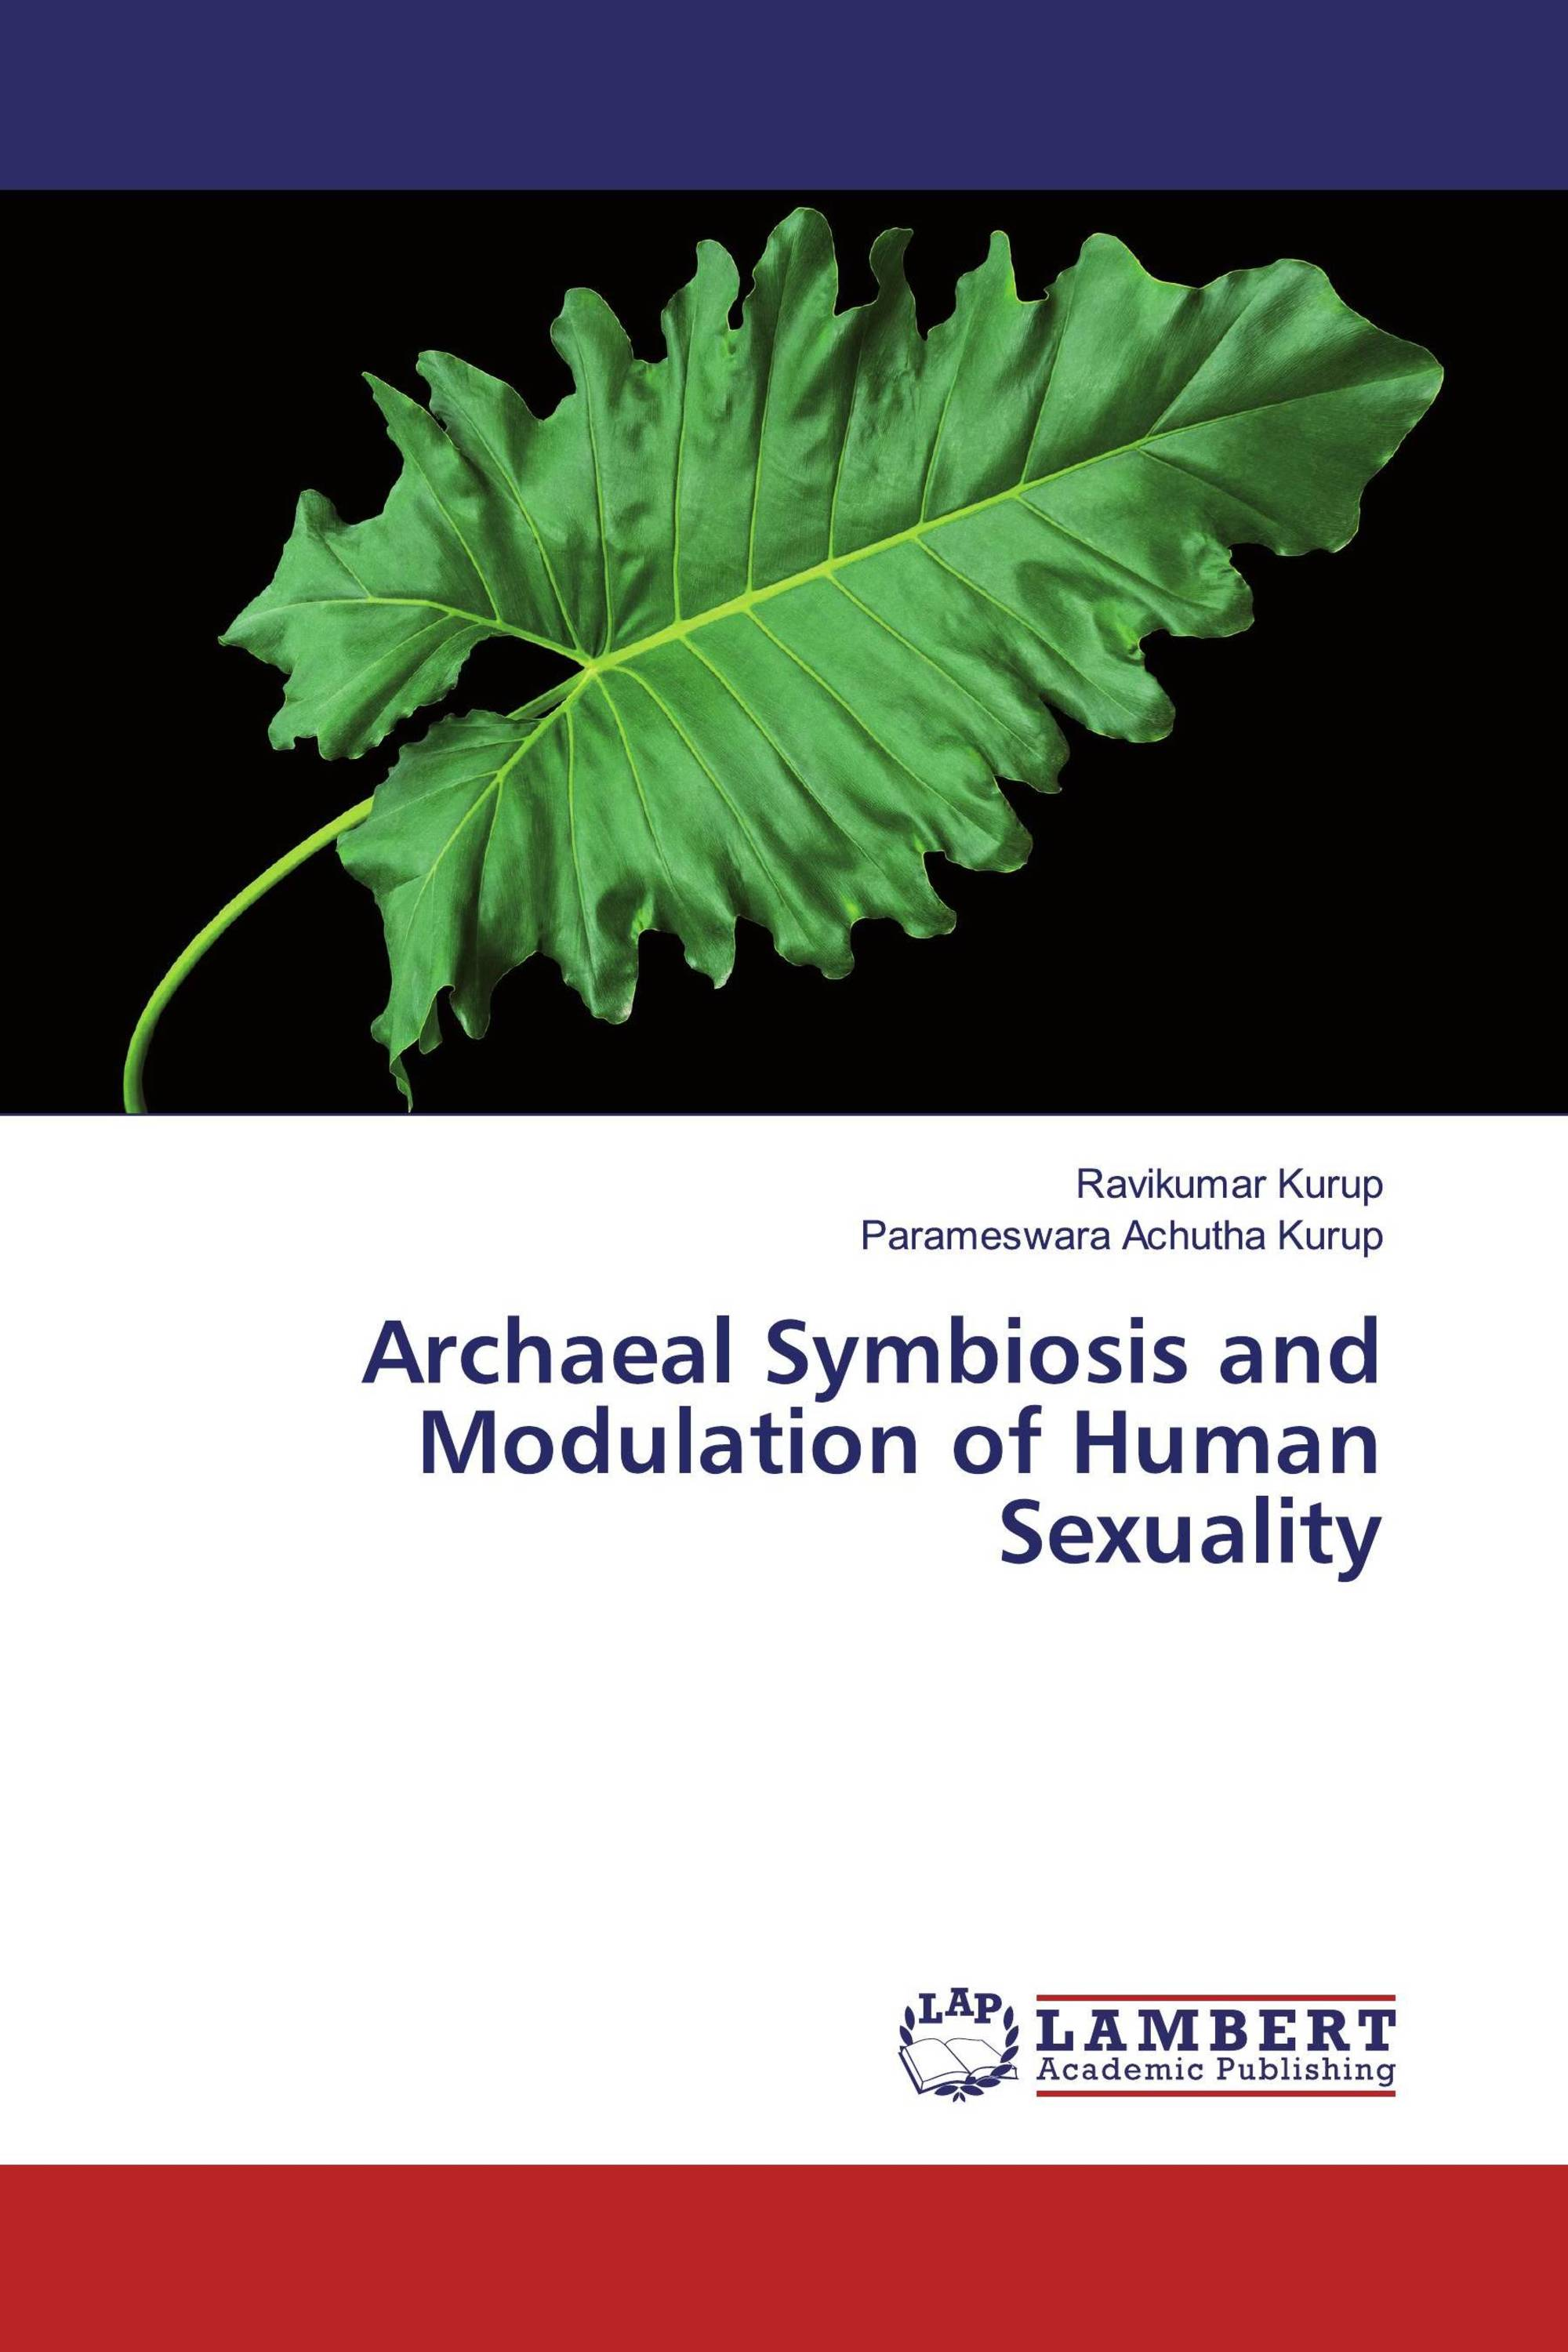 Archaeal Symbiosis and Modulation of Human Sexuality